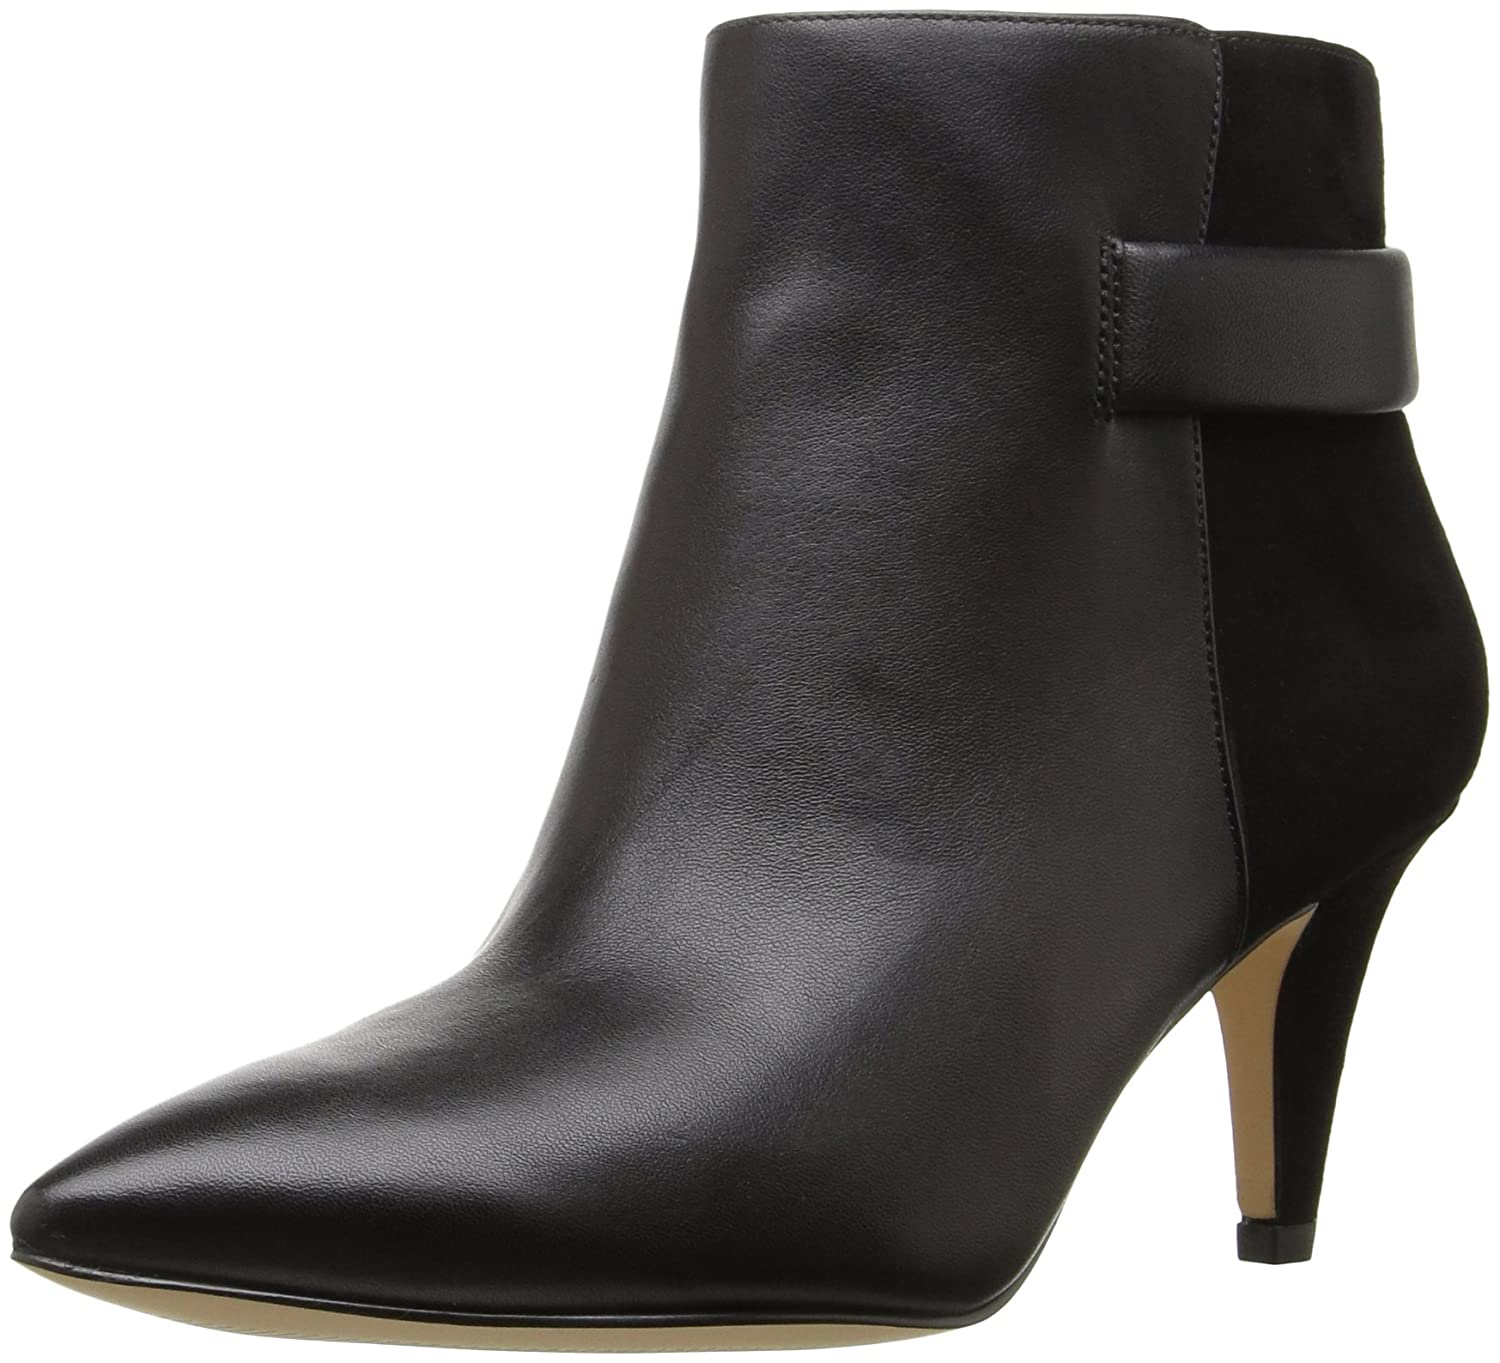 Nine West Women's Jaison Leather Ankle Bootie B01EXXK2UC 6 B(M) US|Black